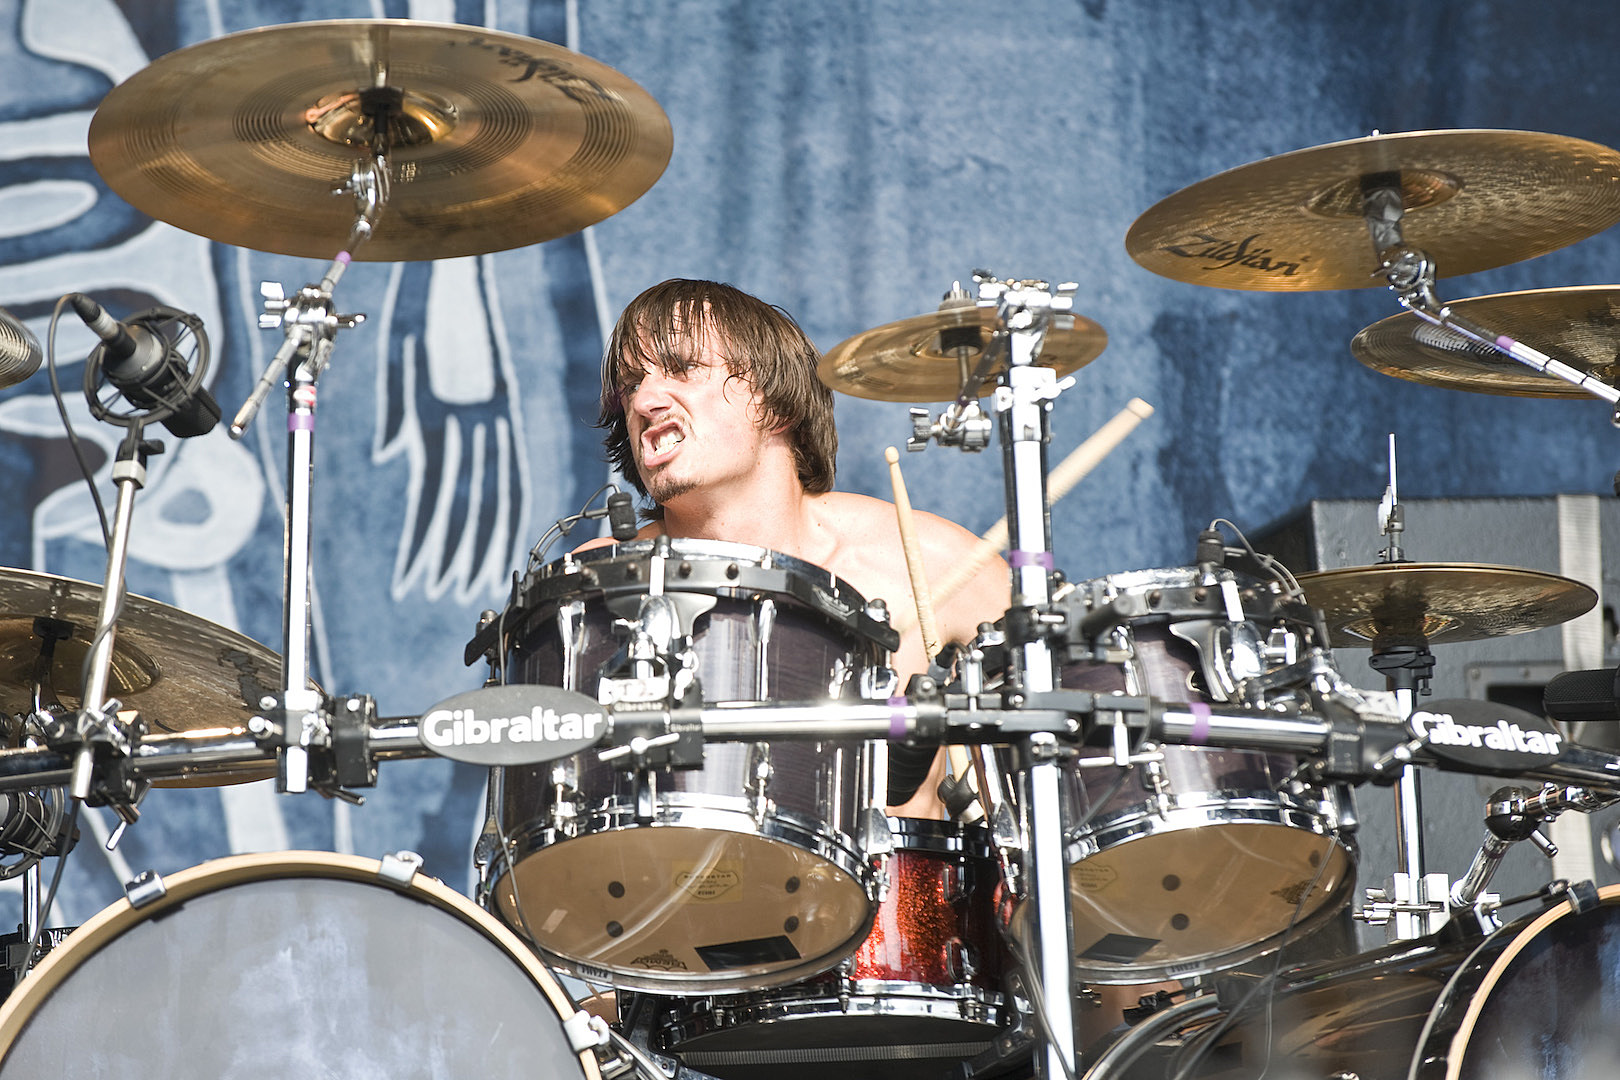 Best Drummer In The World 2020 10 Times Mario Duplantier Was the Best Drummer on Earth